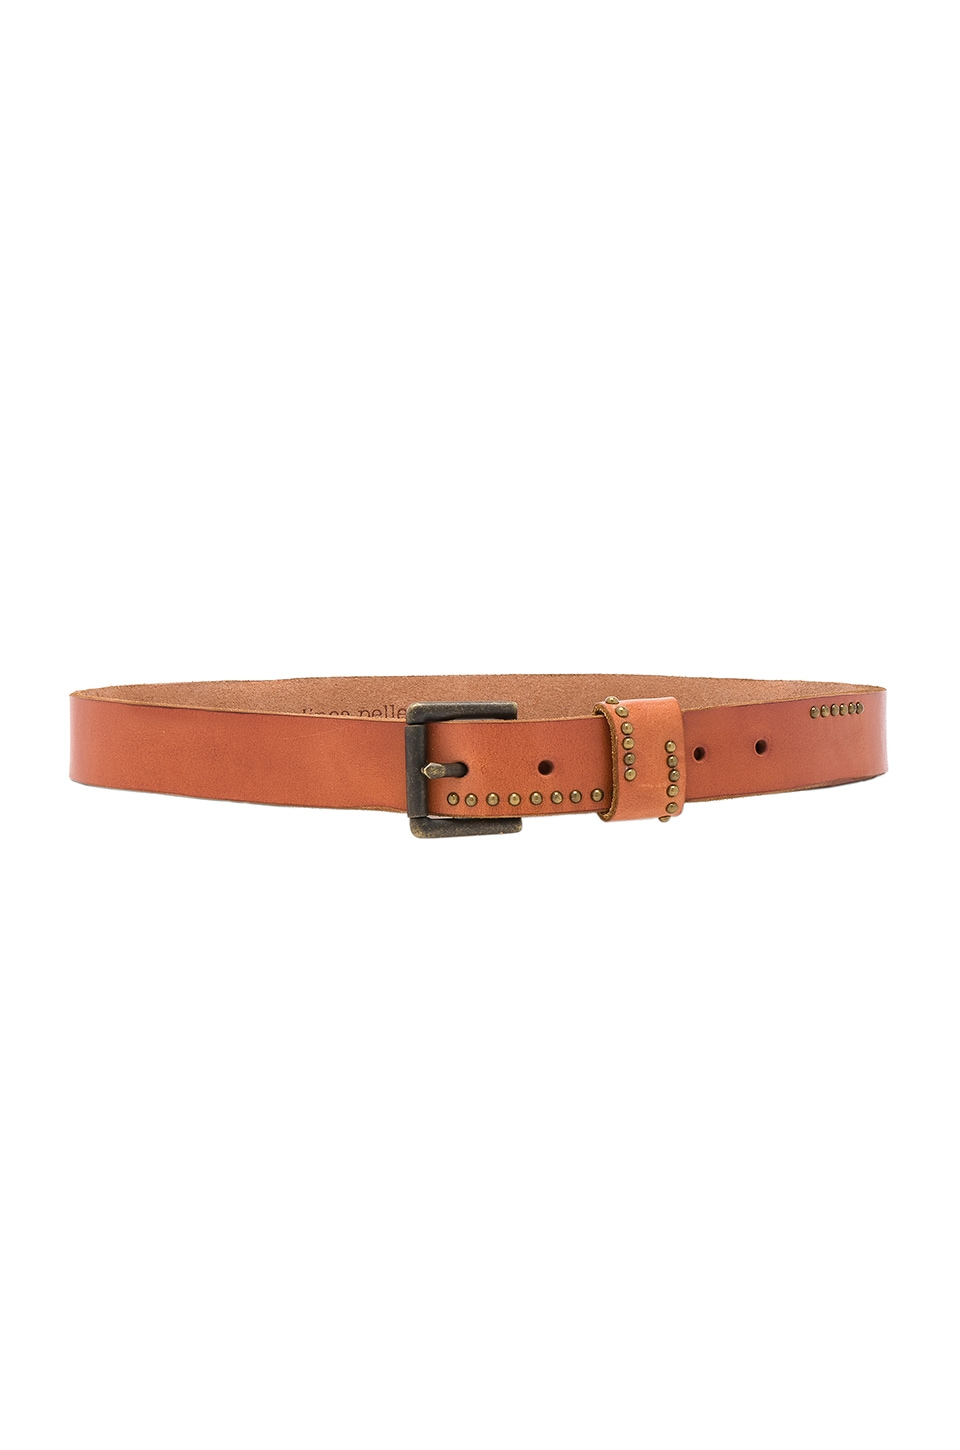 Studded Jean Belt by Linea Pelle